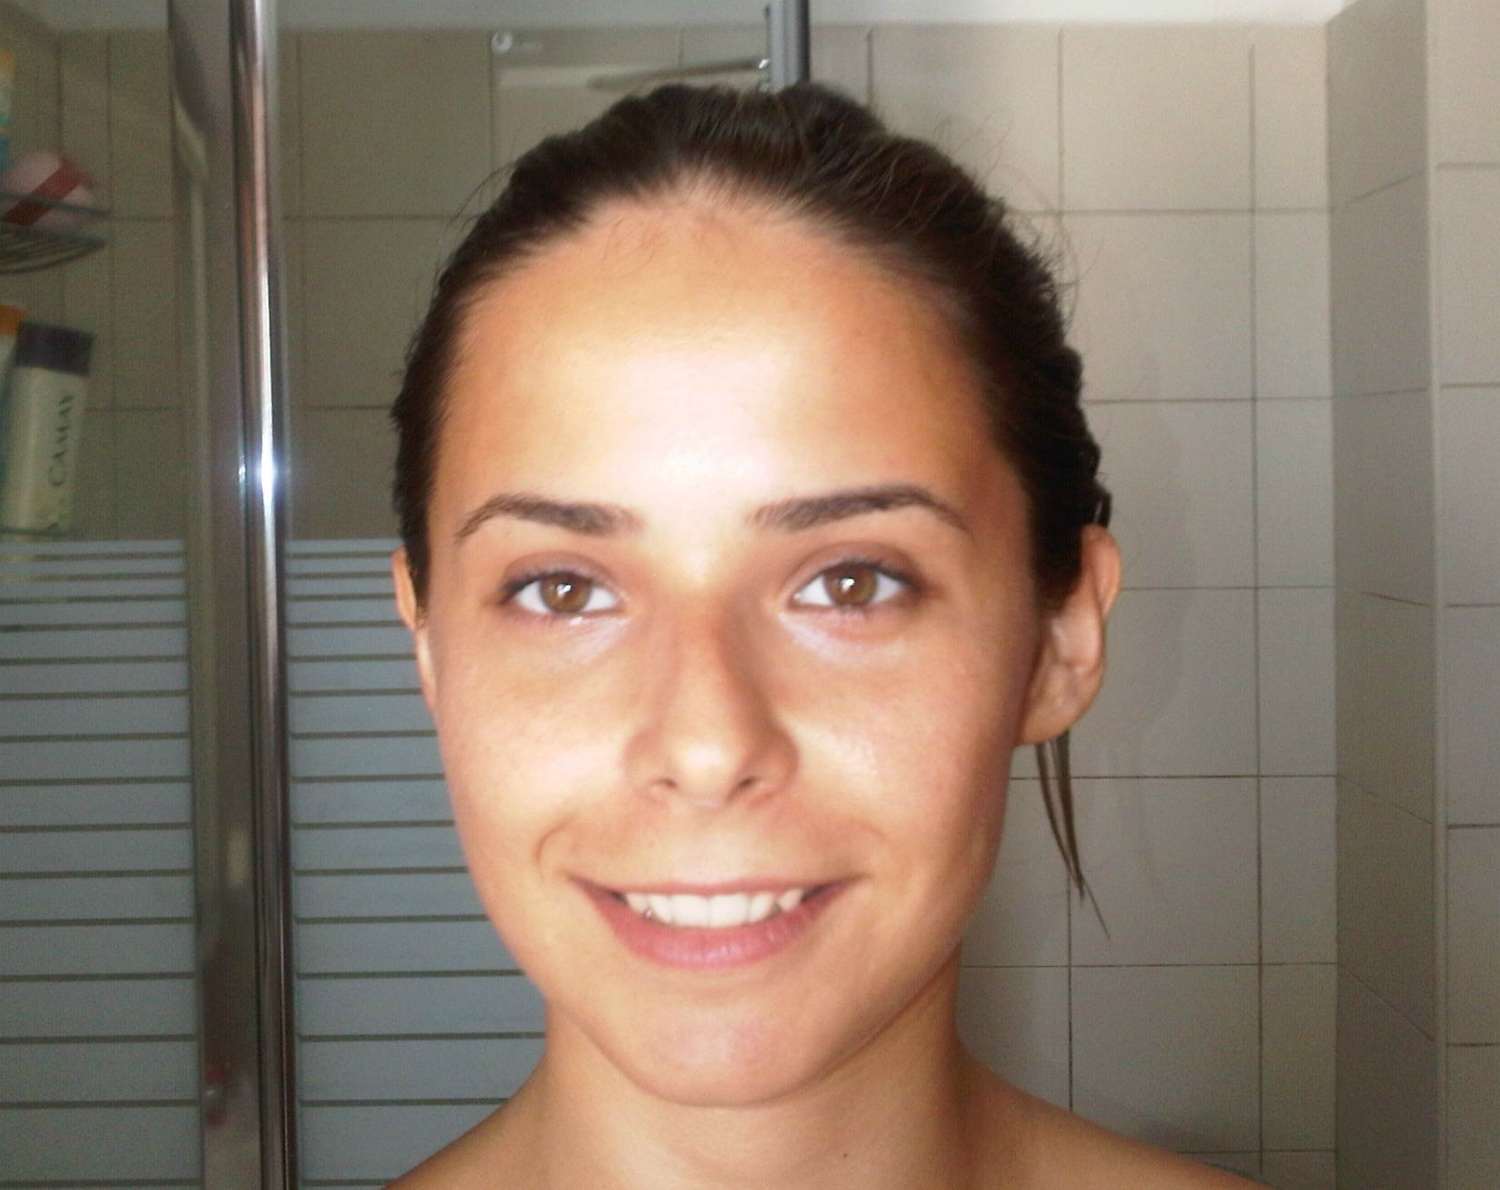 Which Haircut Suits My Round Face And Large Forehead? - Beauty throughout Haircut For Round Face Large Forehead